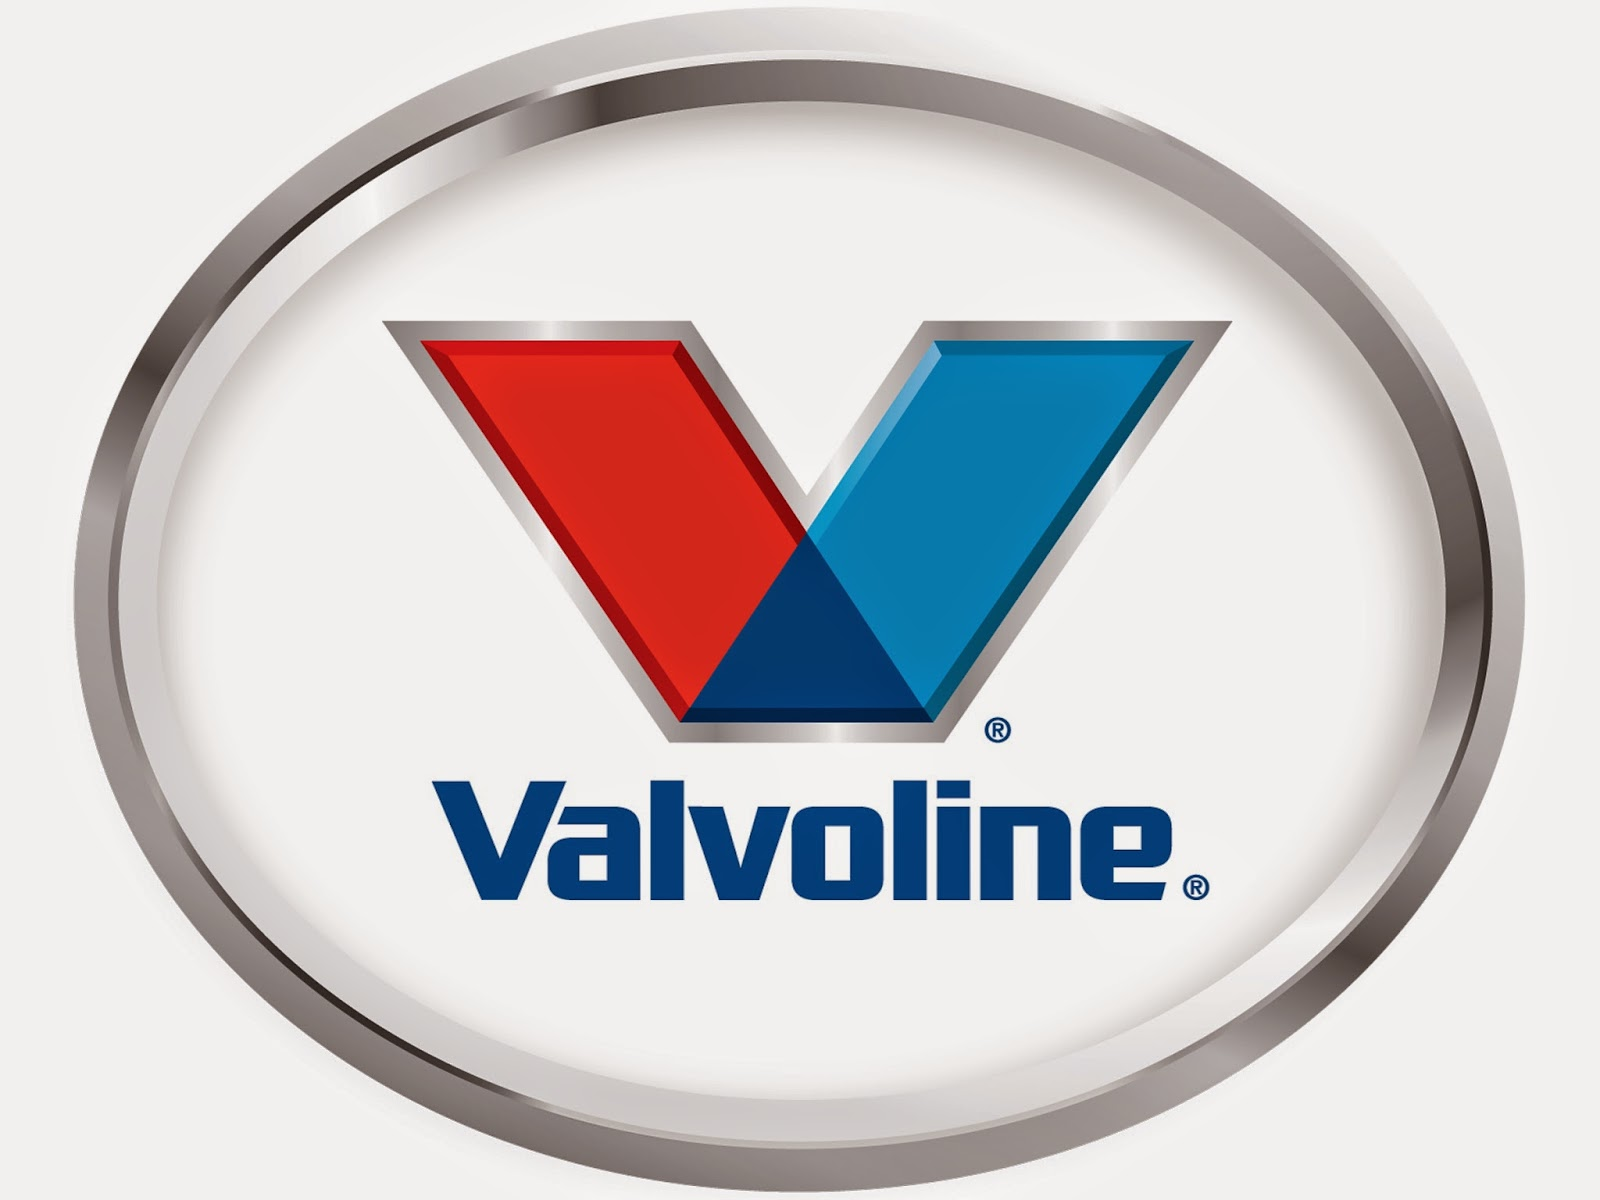 © Valvoline TM Trademark, Valvoline or its subsidiaries, registered in various countries. All trademarks shown are used with the permission of their respective owners Join Team Valvoline.